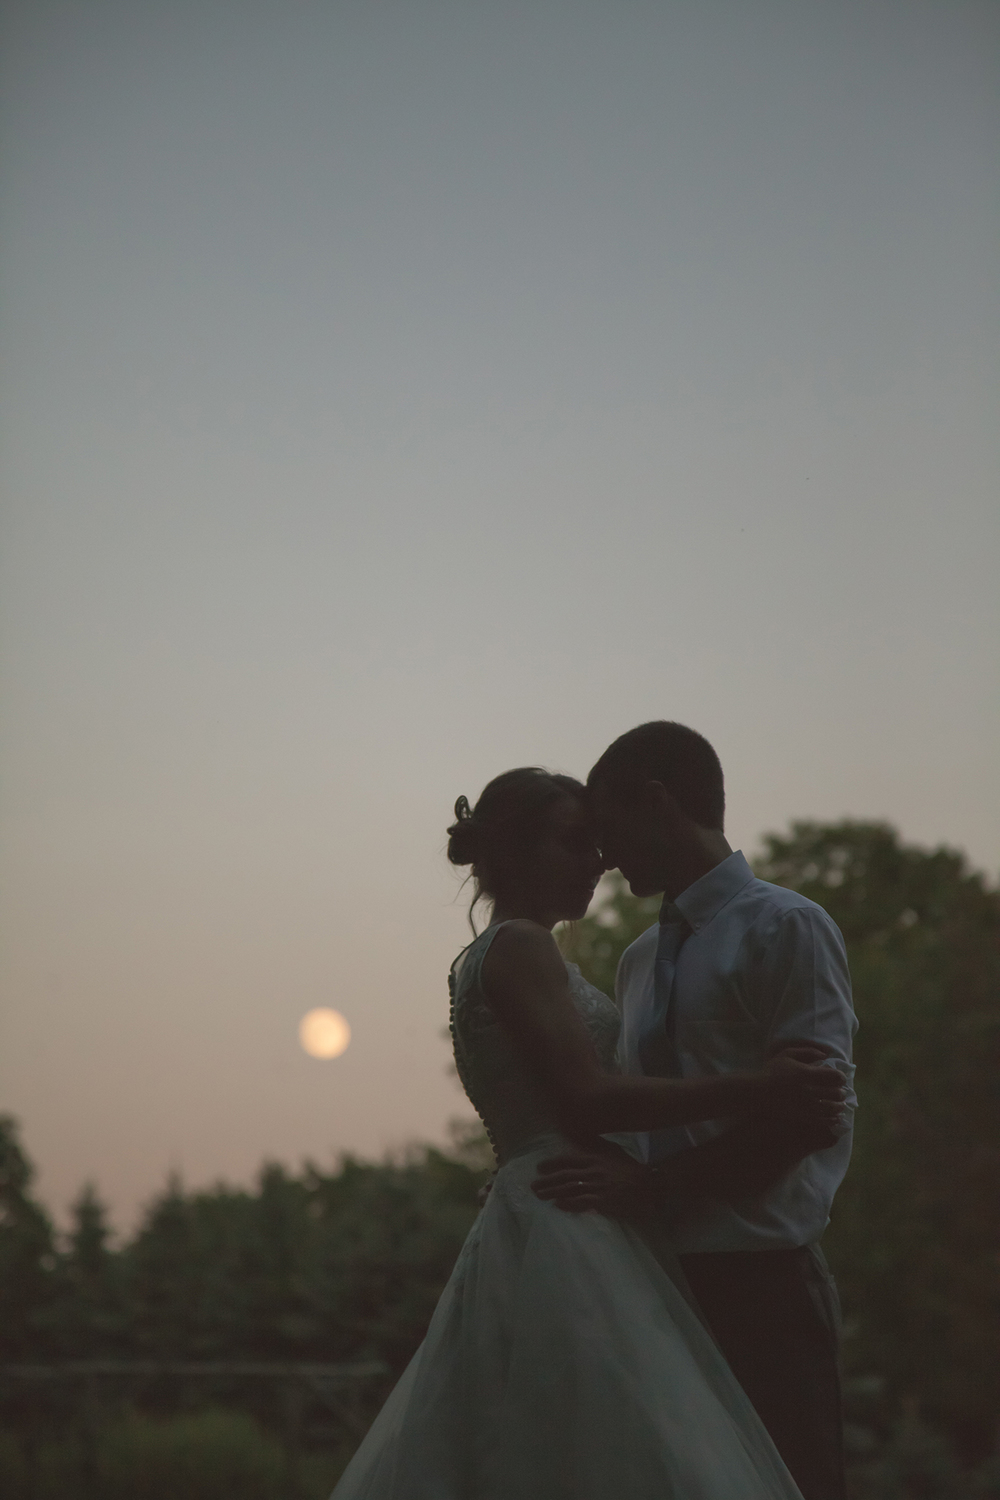 Wedding photography in Buffalo, NY of bride and groom at dusk under full moon.